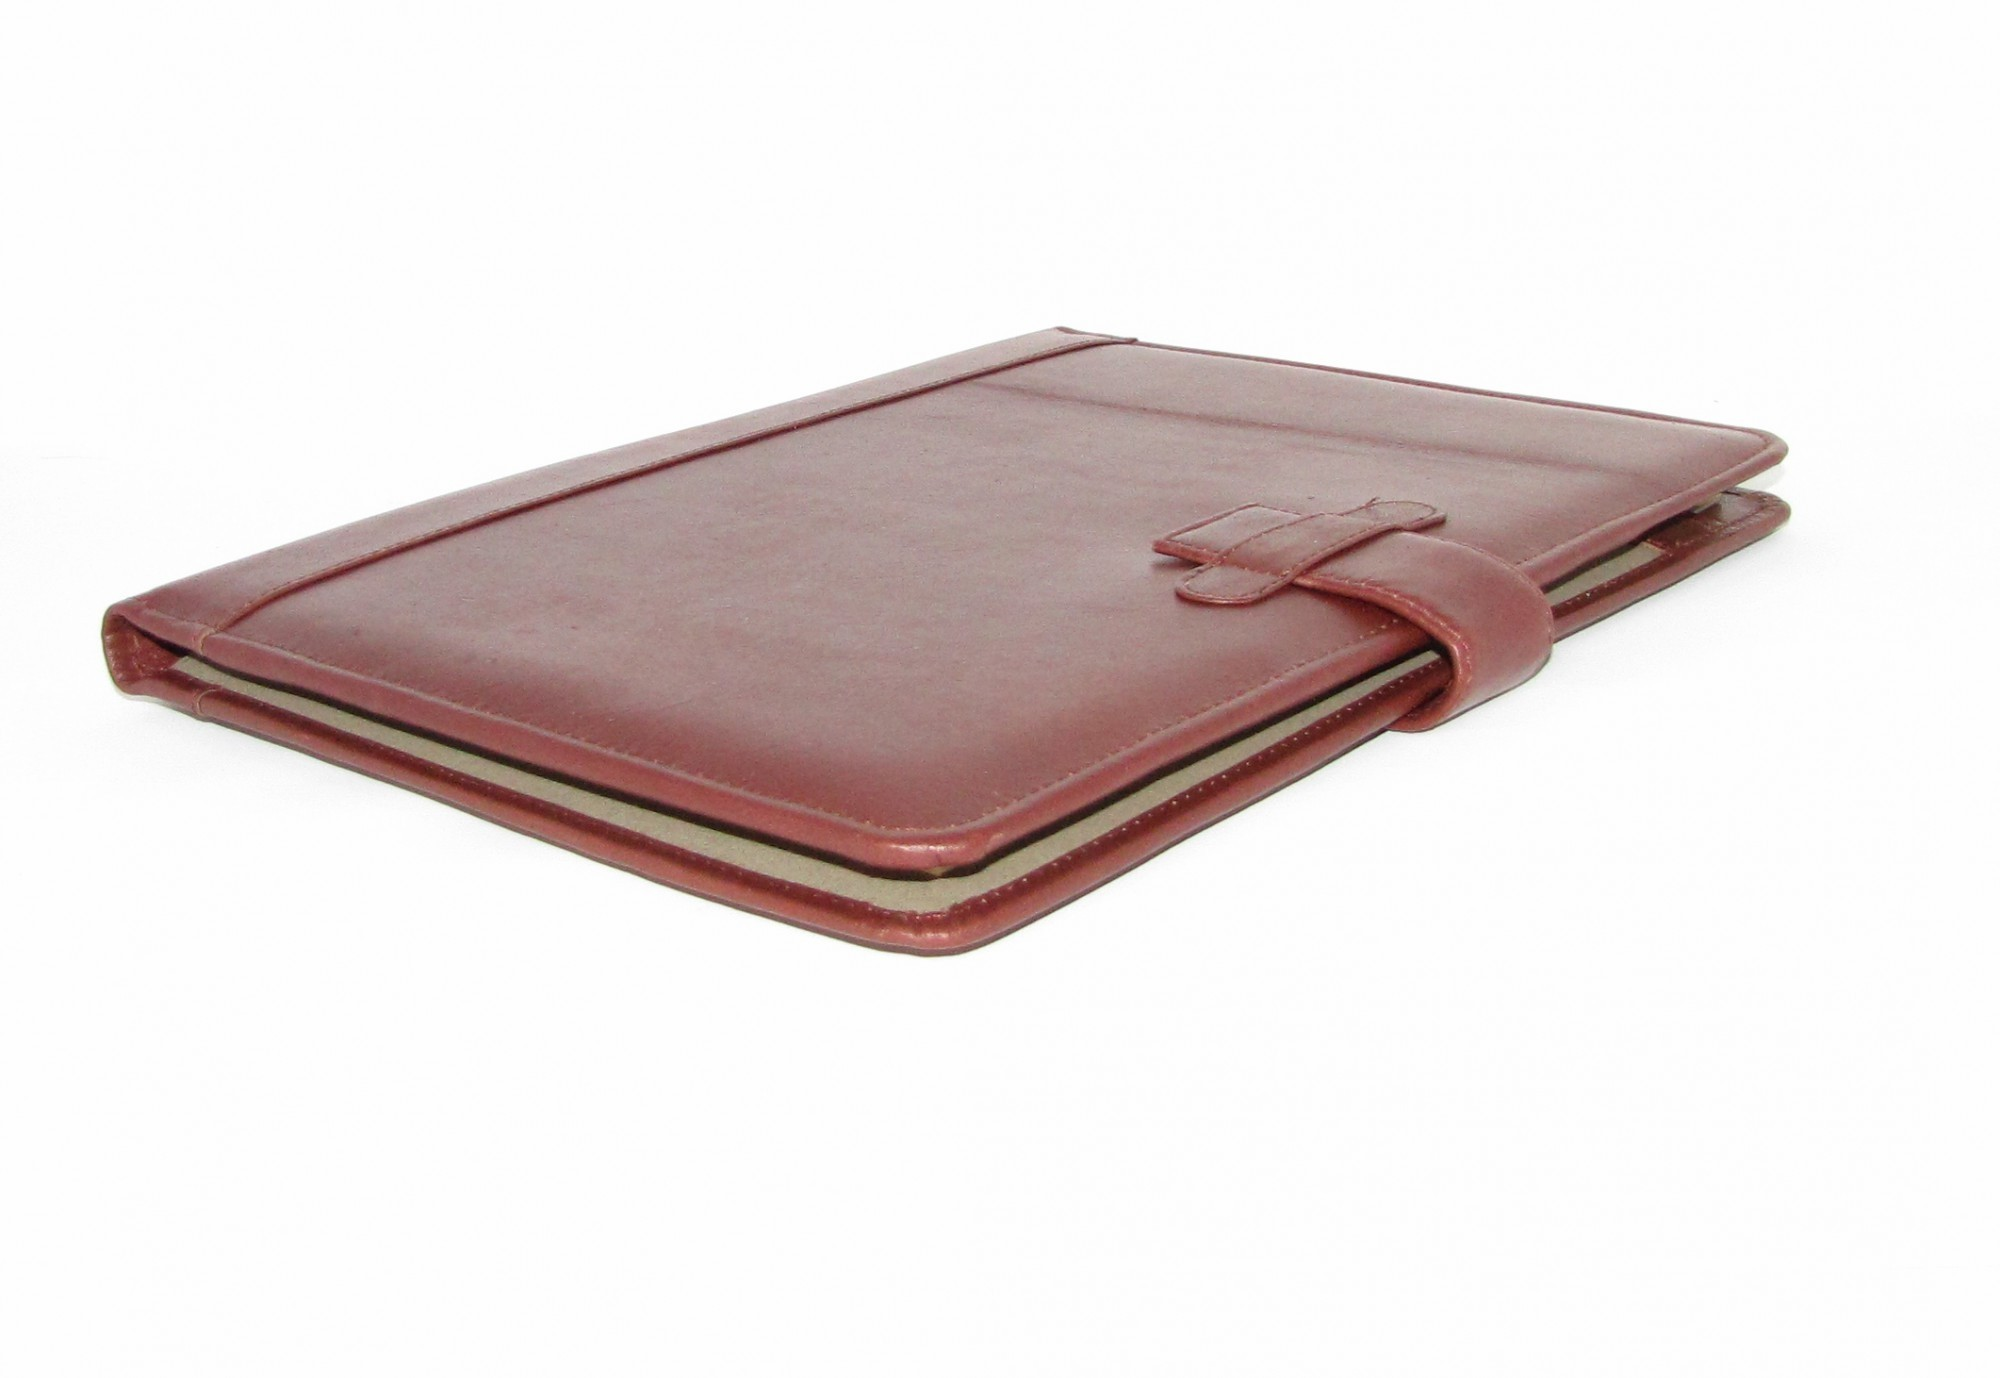 BROWN LEATHER A4 FOLDER ORGANISER PORTFOLIO